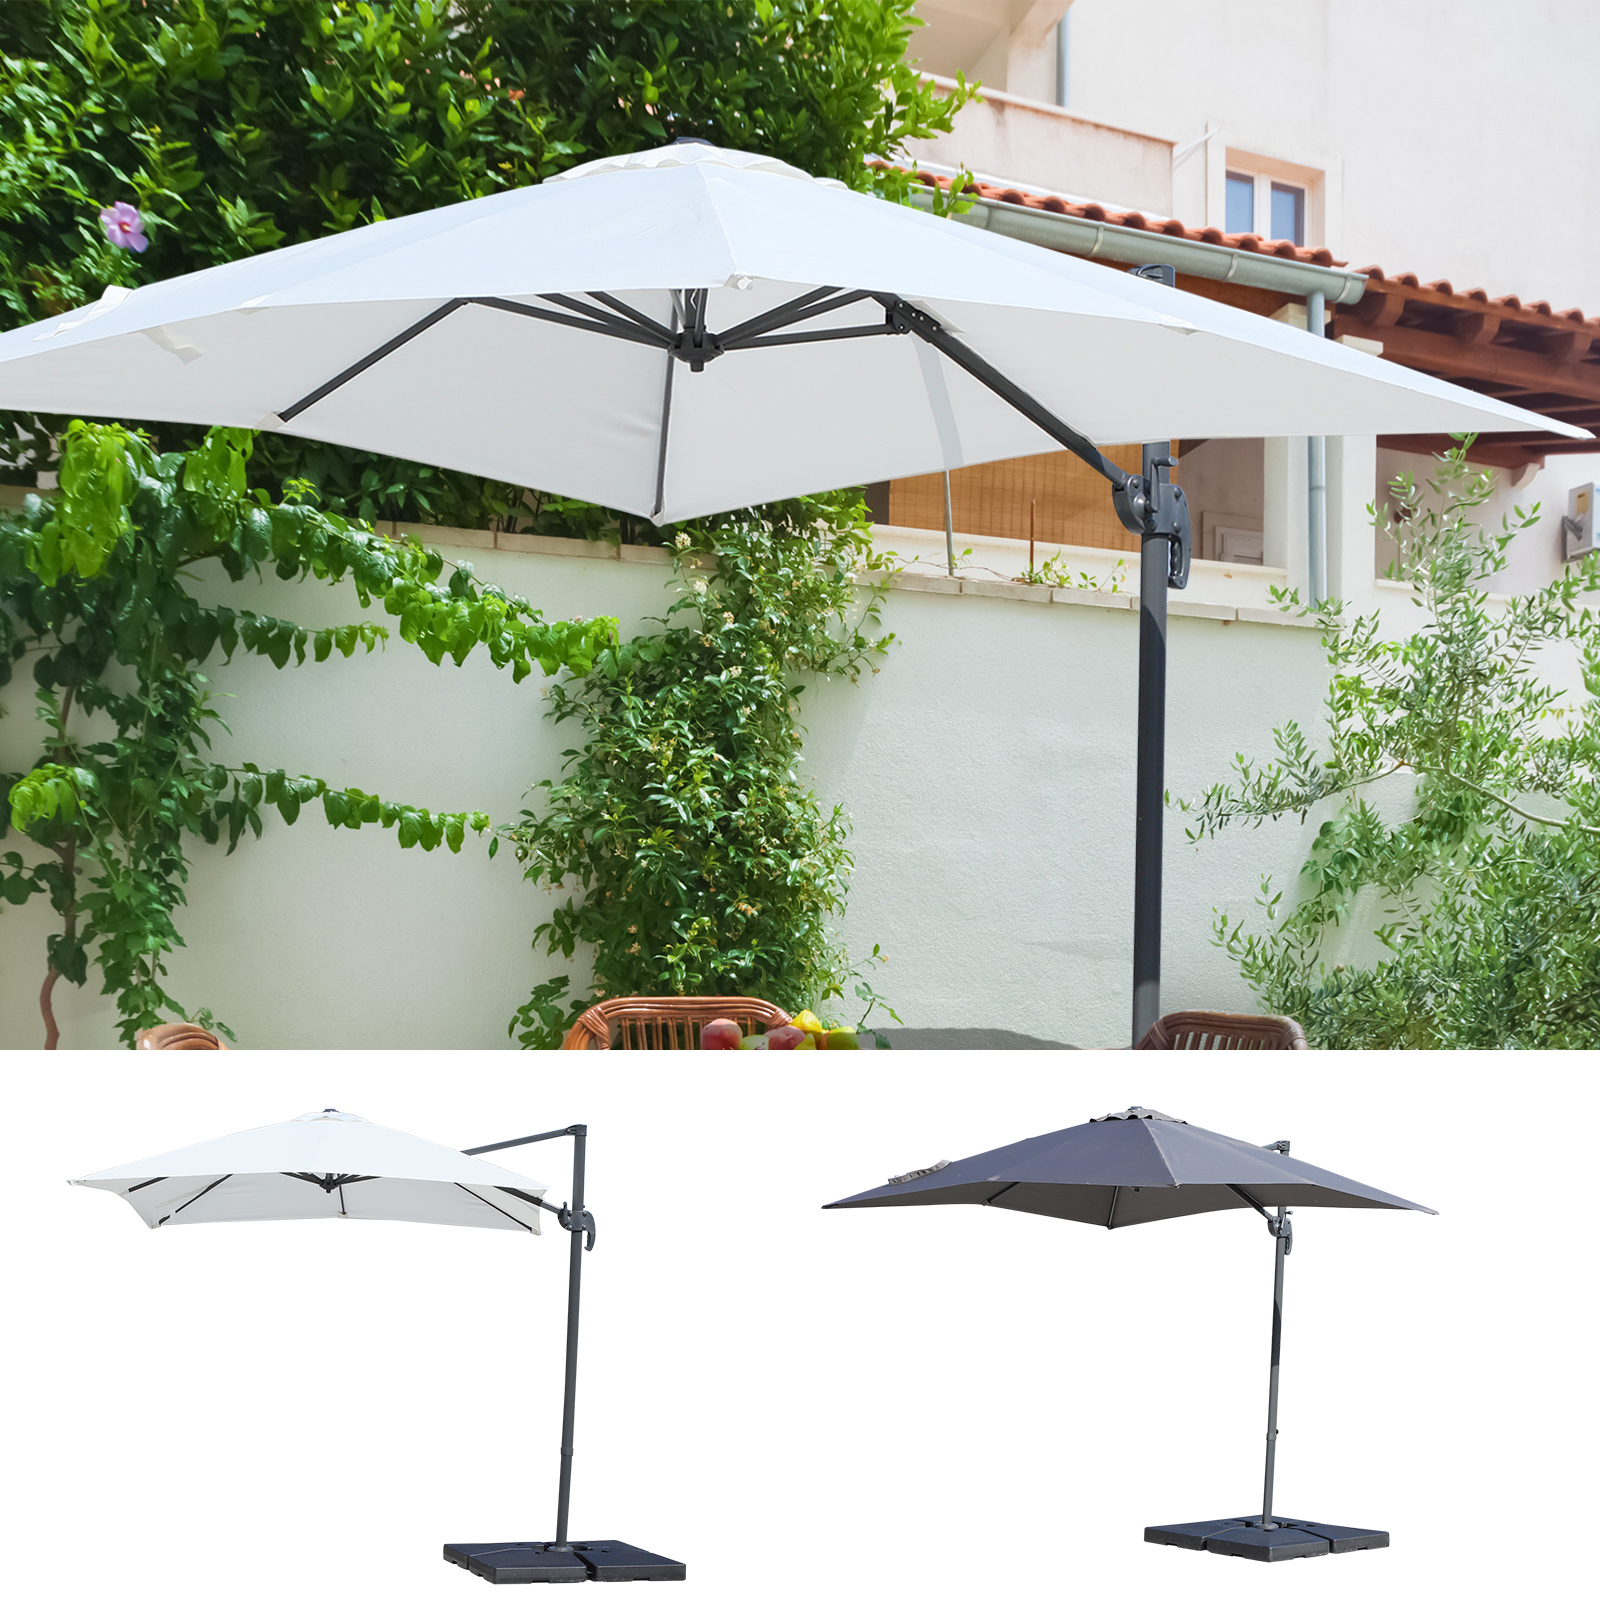 Newest Cantilever Umbrellas For Details About 8'x8' Square Patio Offset Hanging Cantilever Umbrella 360° Rotation W/ Cross (View 16 of 20)